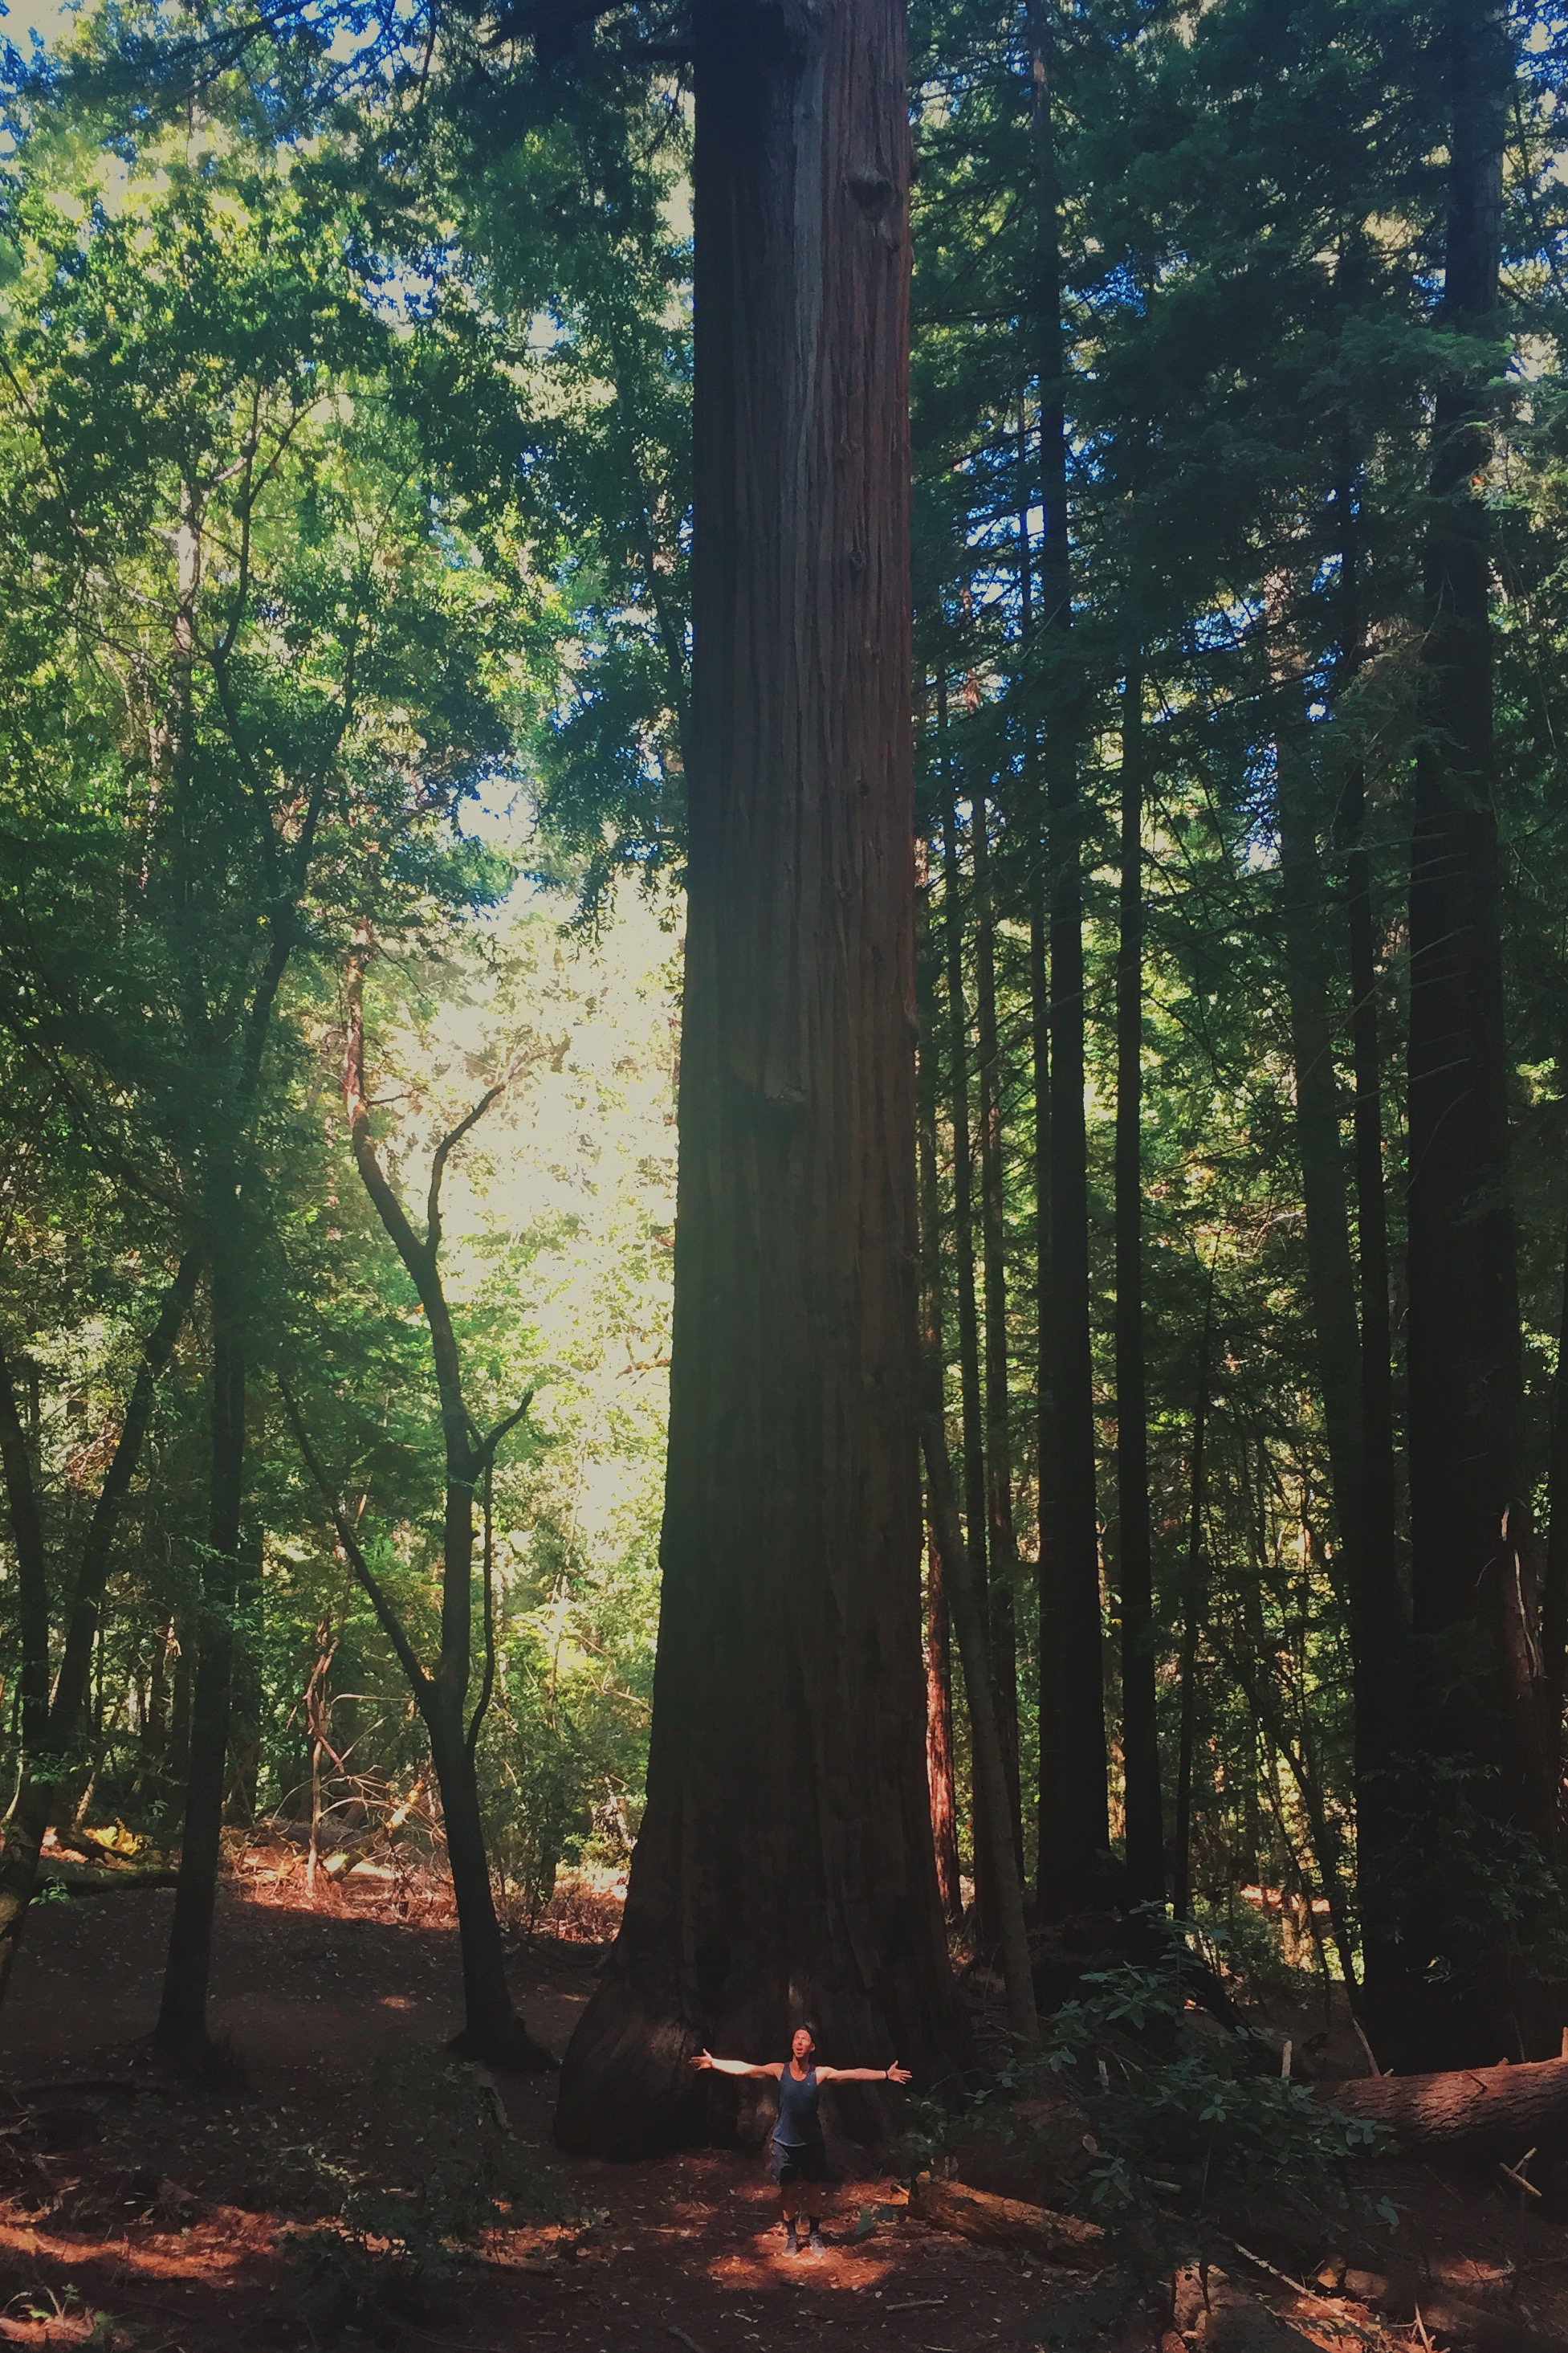 Shawn, Dry Farm Wines Creative Director, bathing in the majestic beauty of the giant Redwoods of Northern California